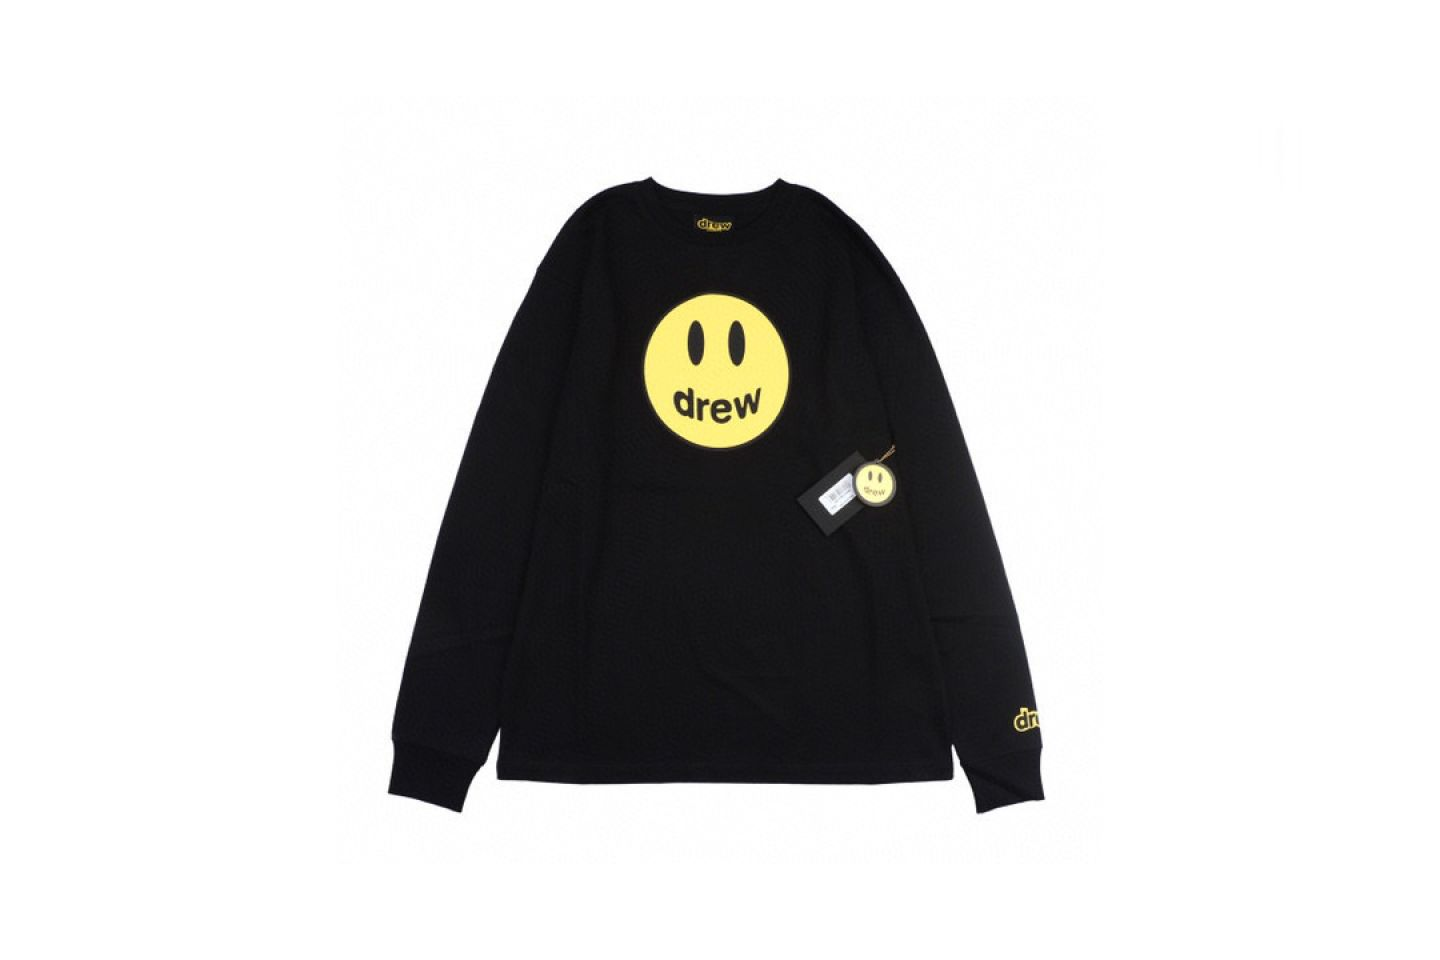 """Shirt Drew House 2020 classic smiley face long sleeve T-shirt """"Black"""" 1 drew_house_2020_classic_smiley_face_long_sleeve_t_shirt_black_1"""